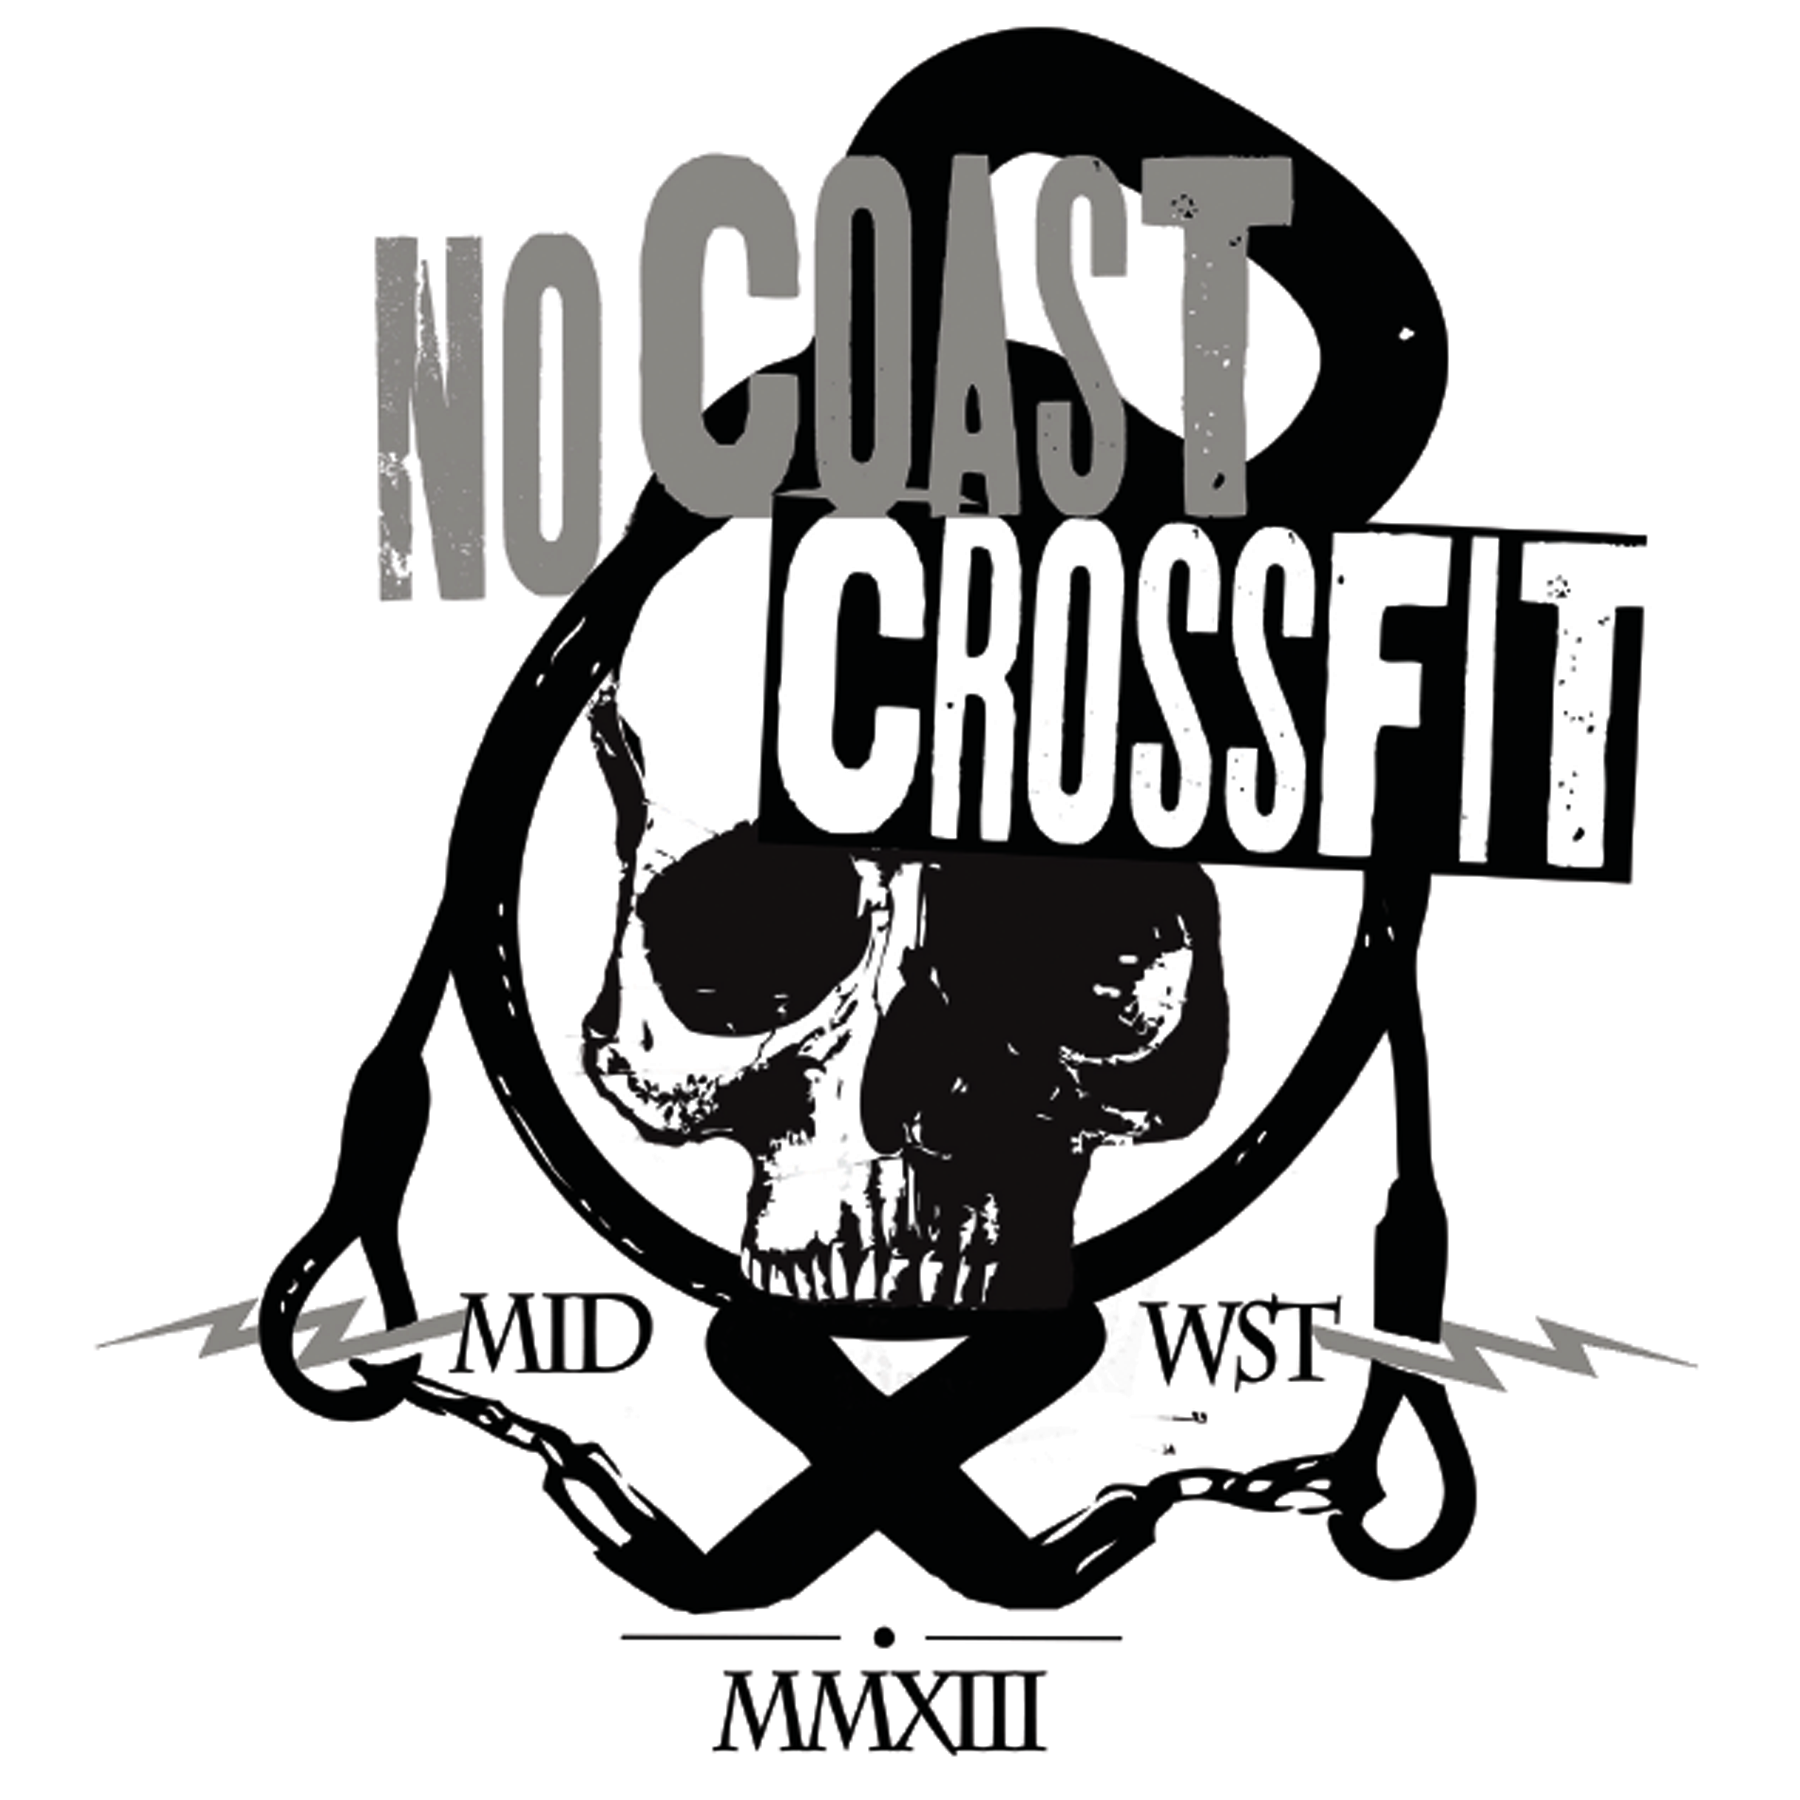 CROSSFIT EVENT TEE DESIGN